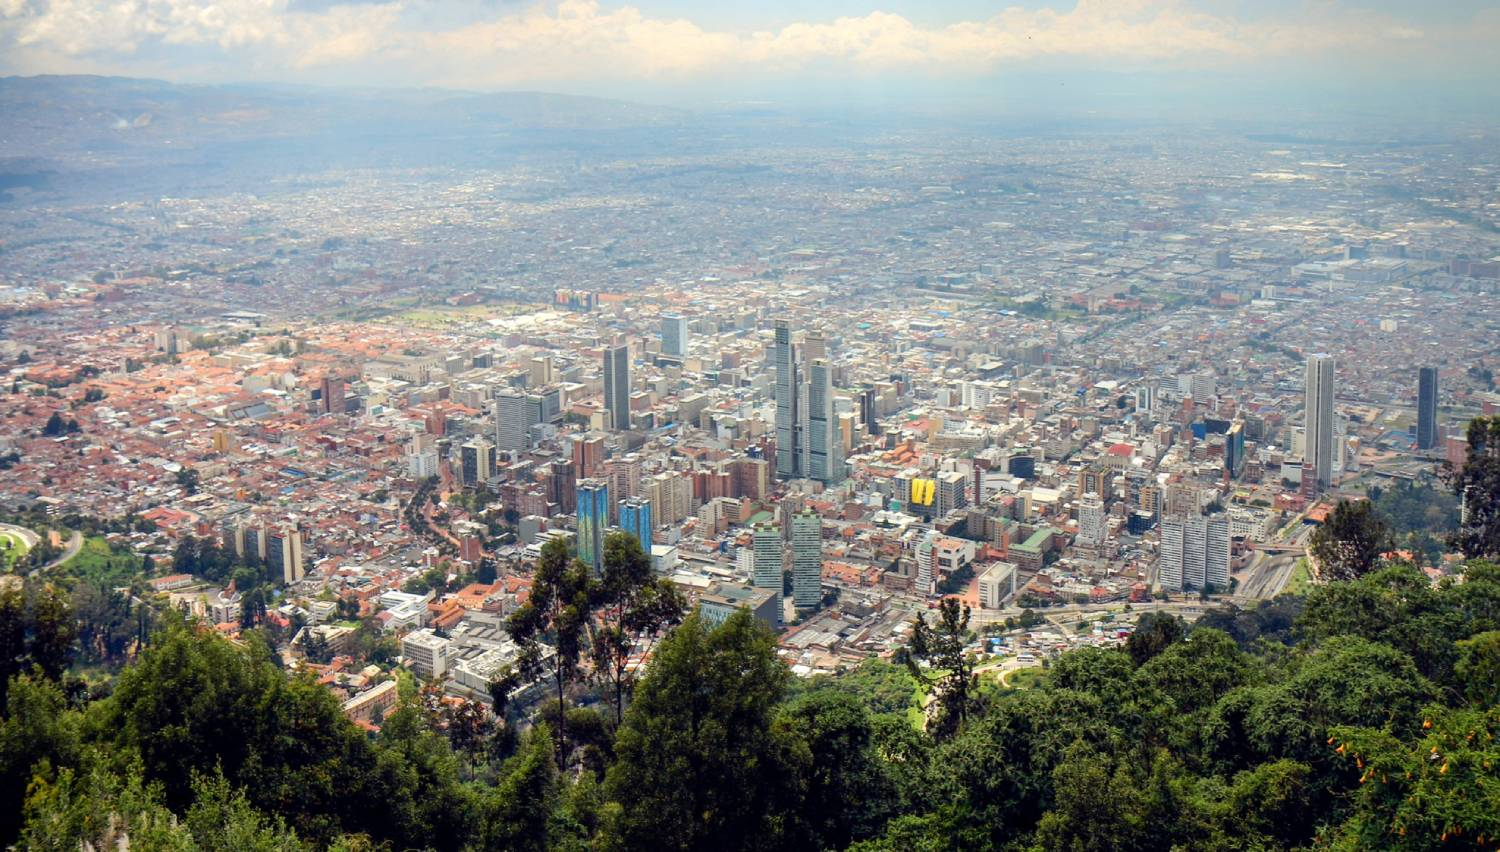 Mount Monserrate - Things To Do In Bogota